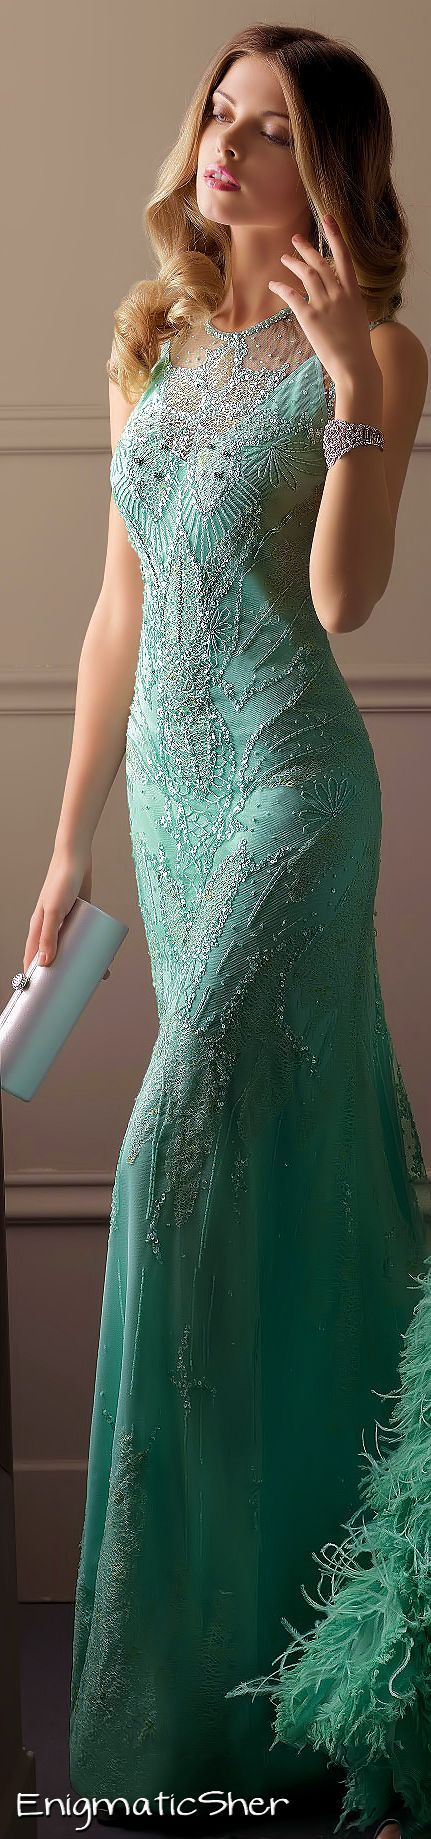 Turquoise blue cocktail or reception gown with sequin embroidery | Weddingz.in | India's Largest Wedding Company | Wedding Venues, Vendors and Inspiration